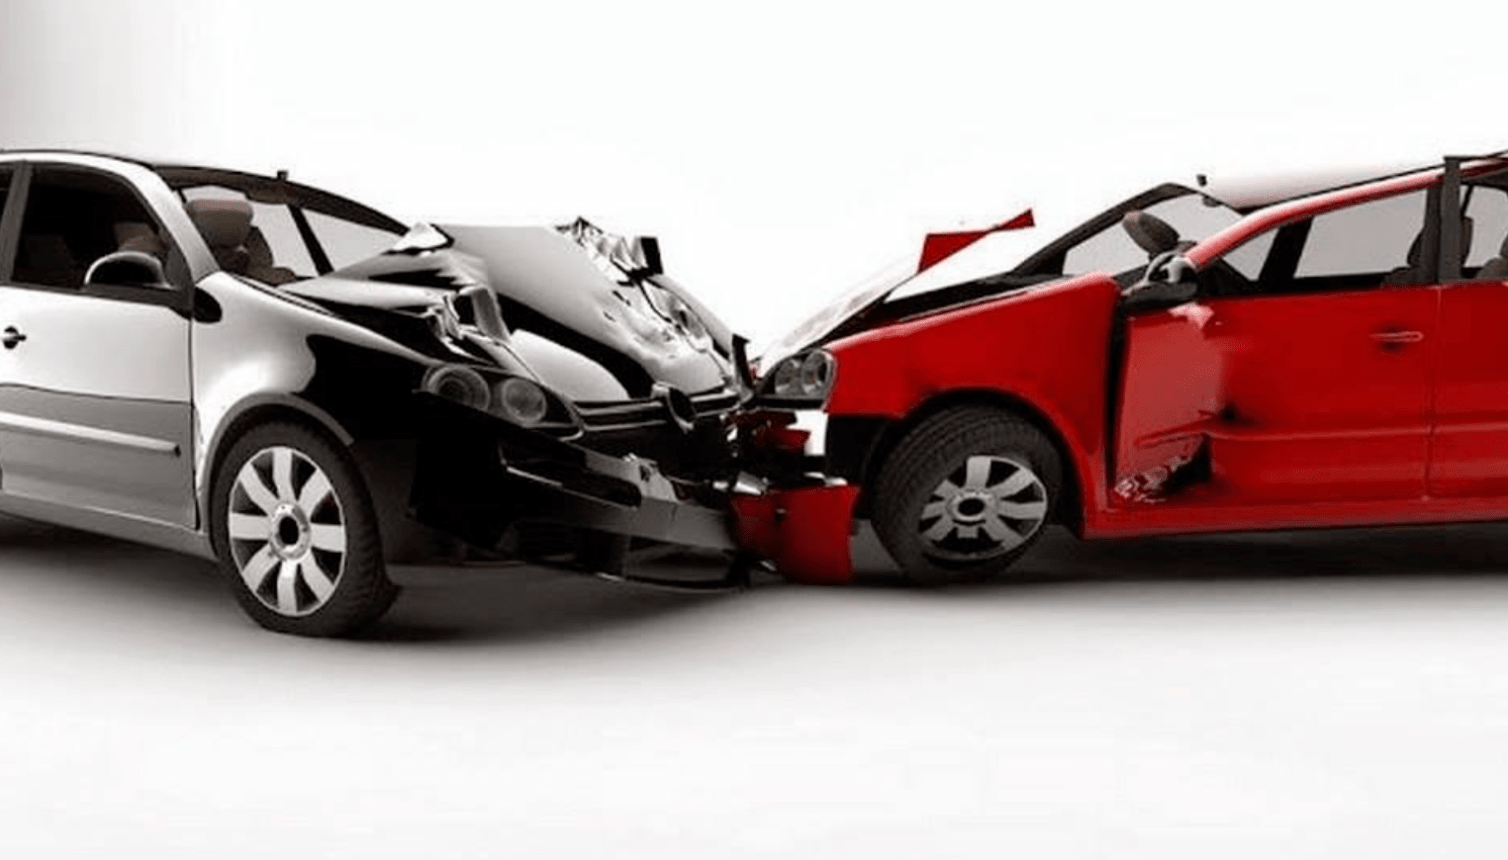 Uber Auto Body Is Pleased To Announce Our Partnership With Apr Performance For All Your Carbon Fiber Needs Http Uberaut Car Accident Lawyer Car Car Accident